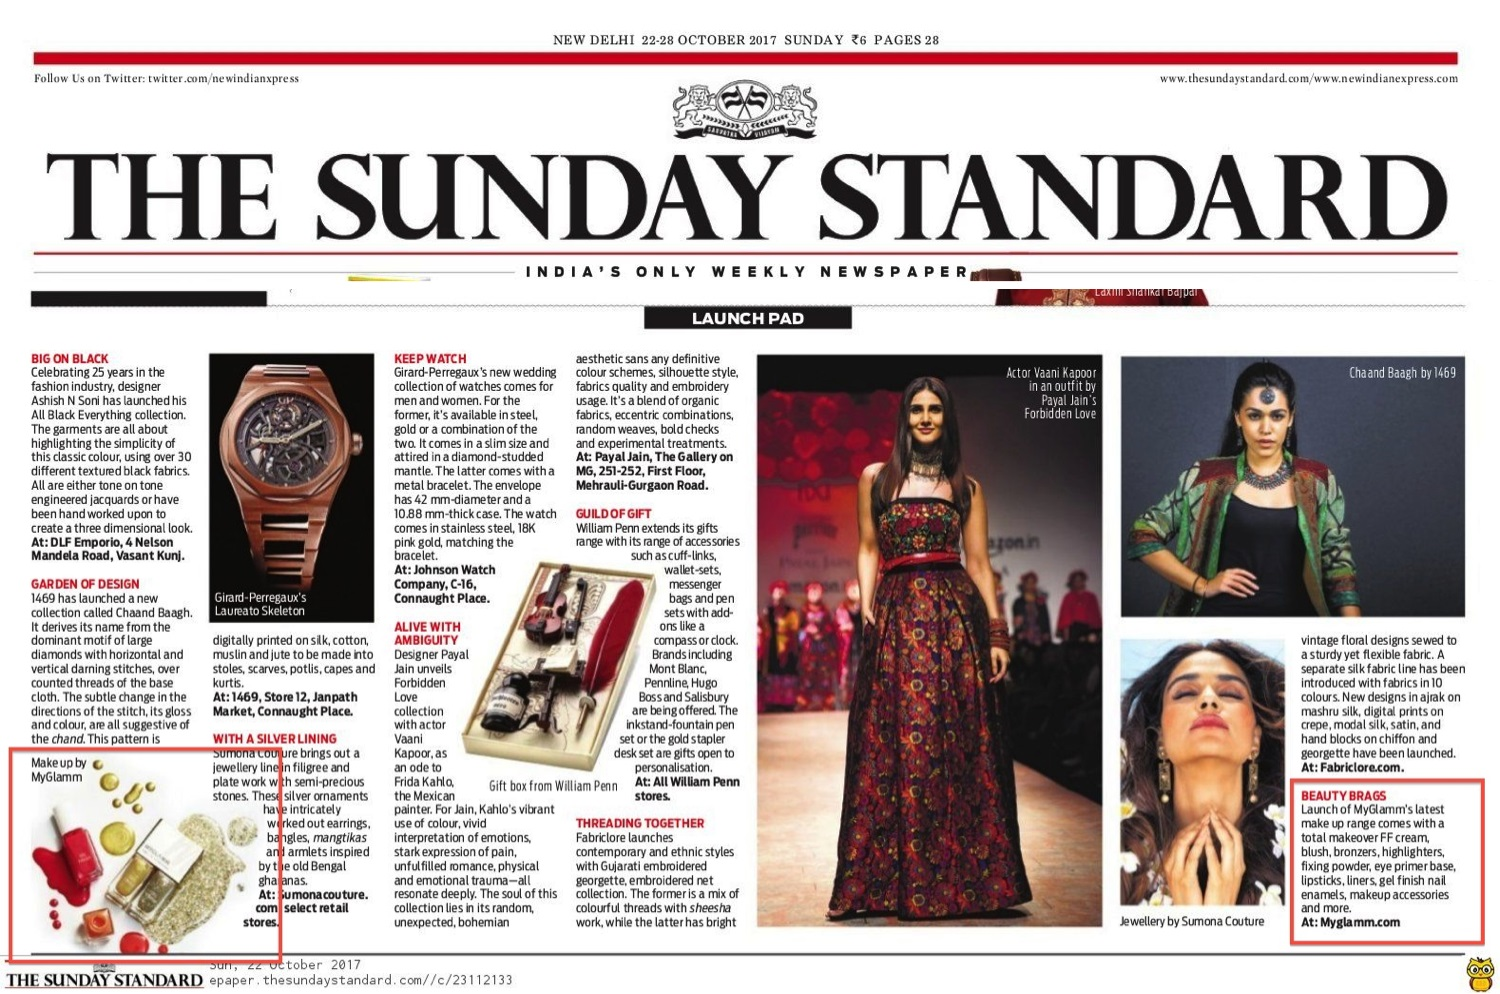 The Sunday Standard - 22nd-28th October 2017 - MyGlamm Products